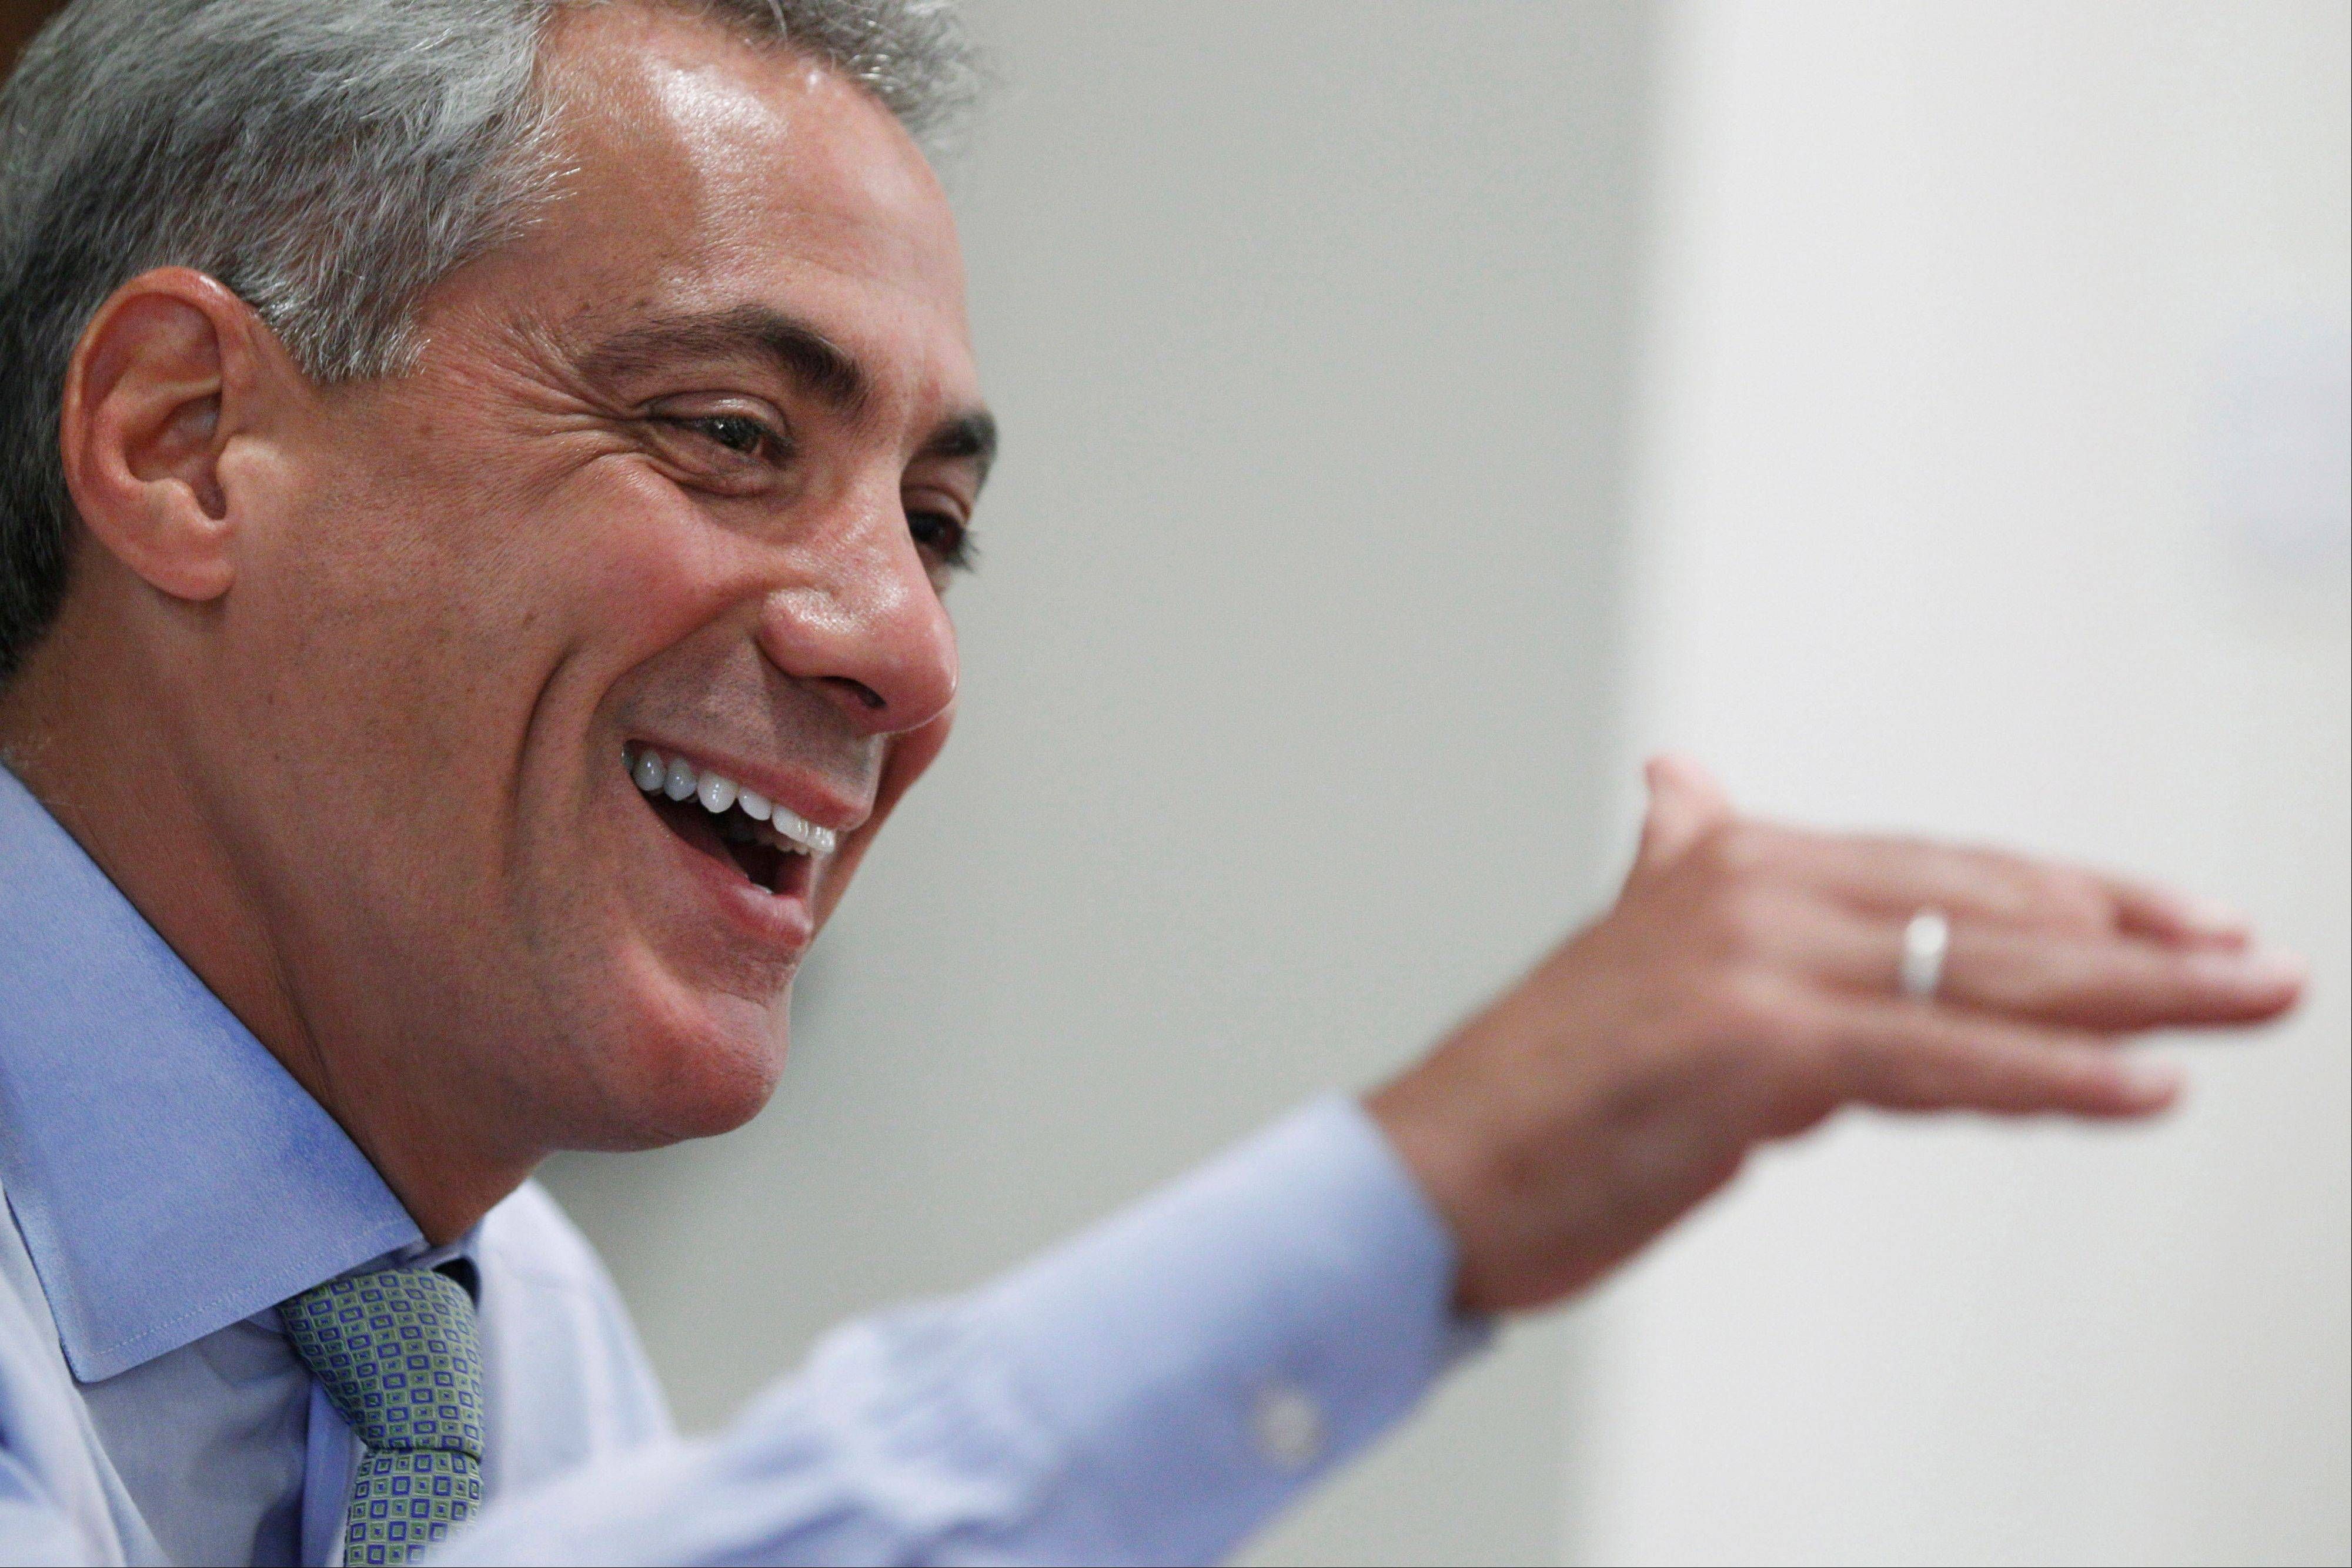 Chicago Mayor Rahm Emanuel, a former dancer, is bringing his longtime passion for dance to his new job as mayor.